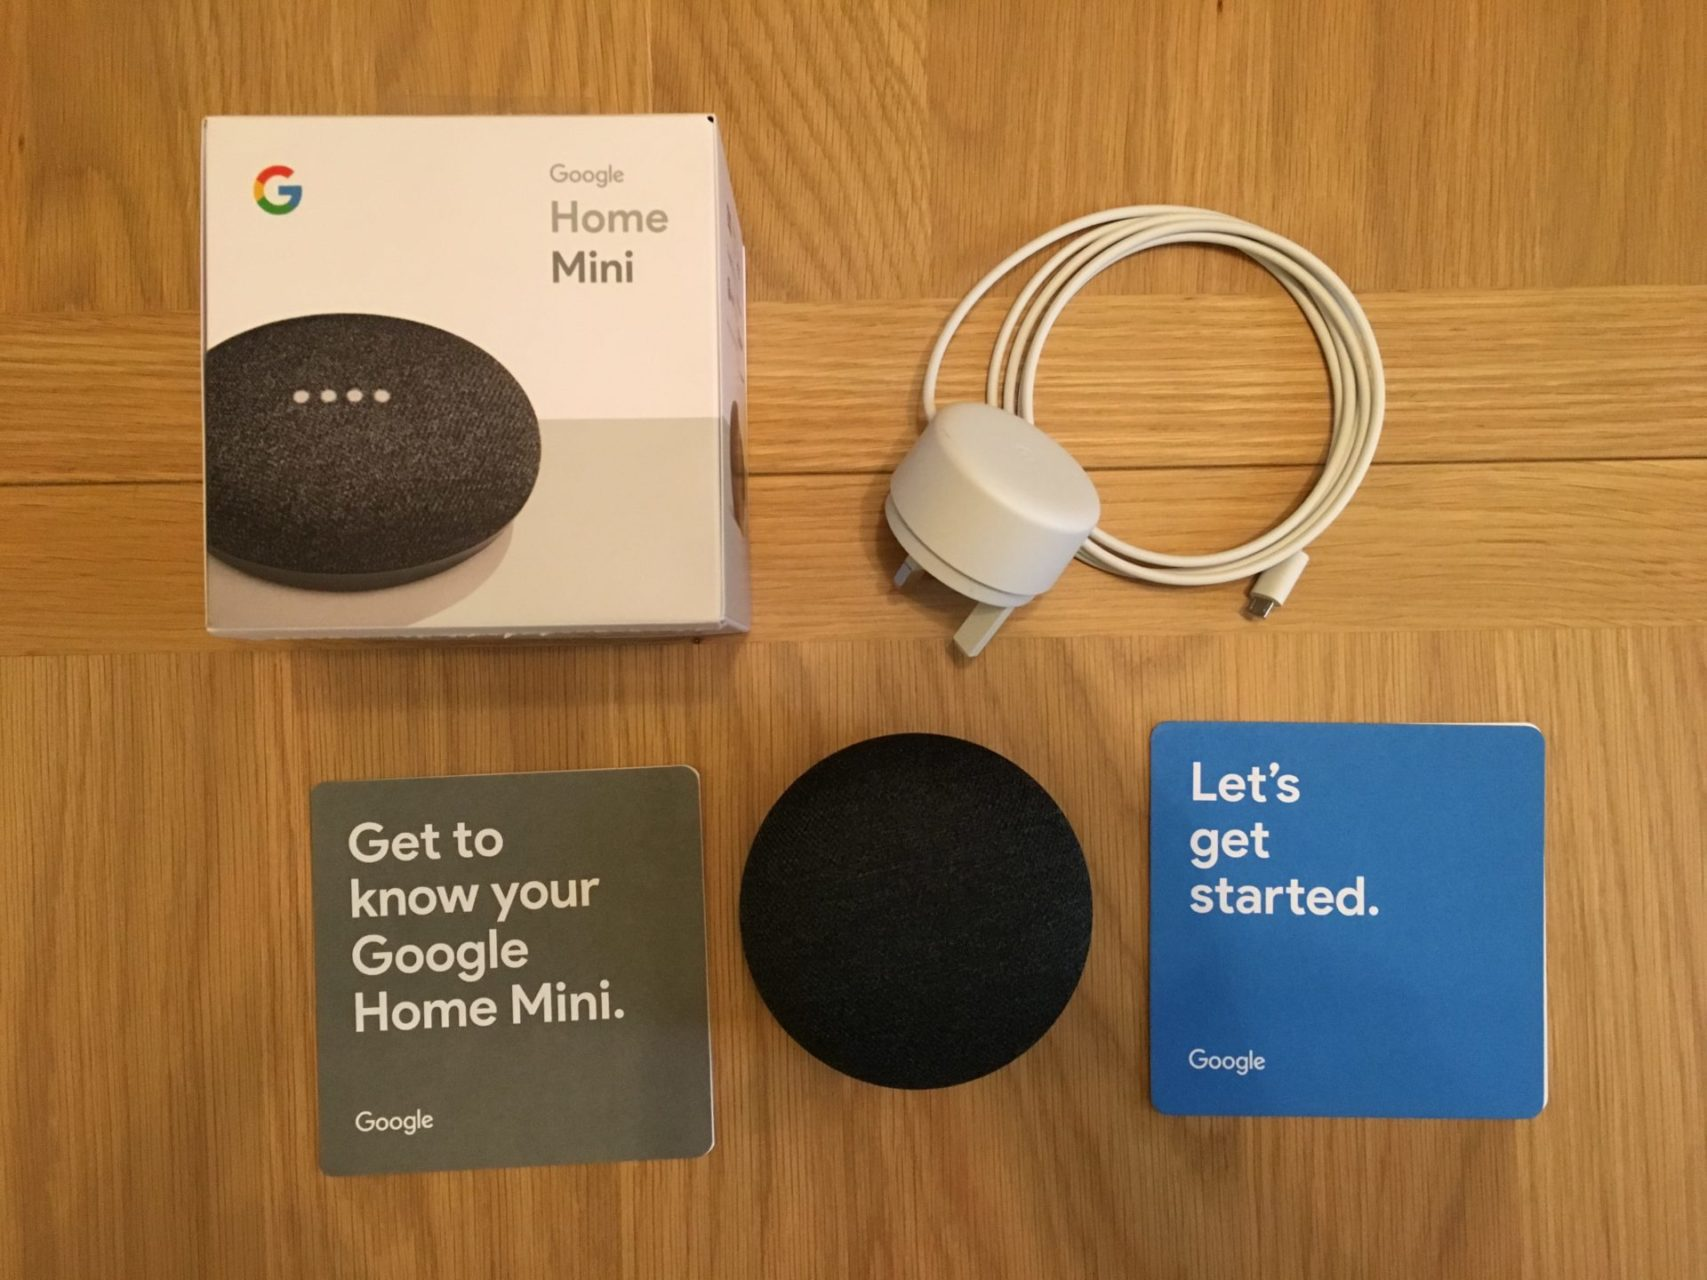 Google Home Mini Box Contents